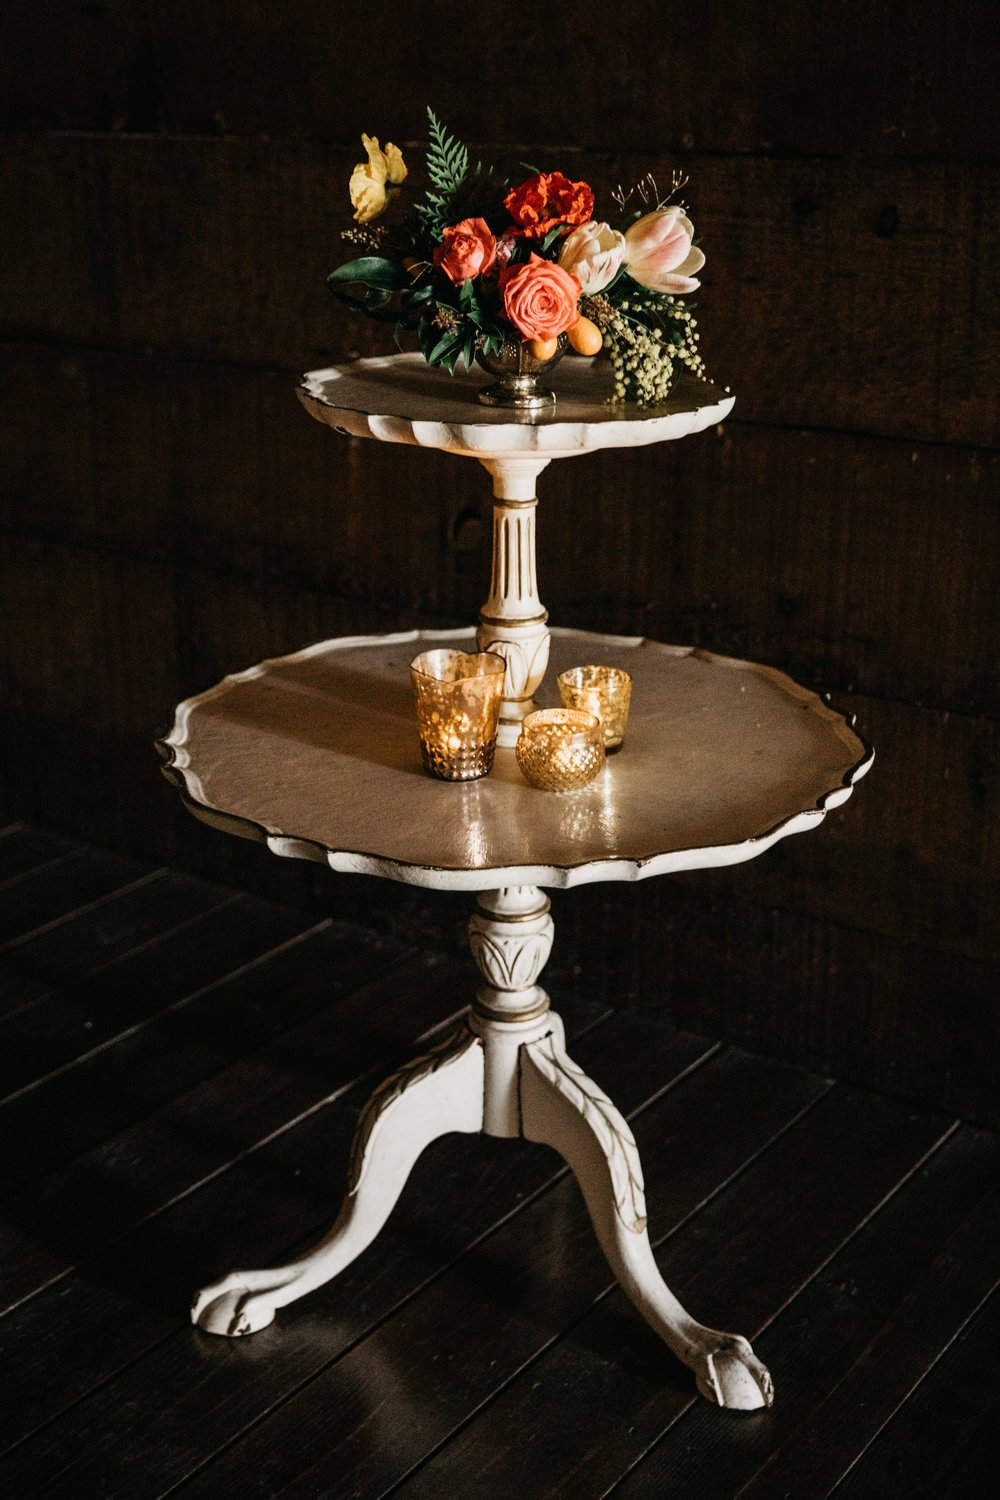 etta two-tier side table $55 (qty 1}